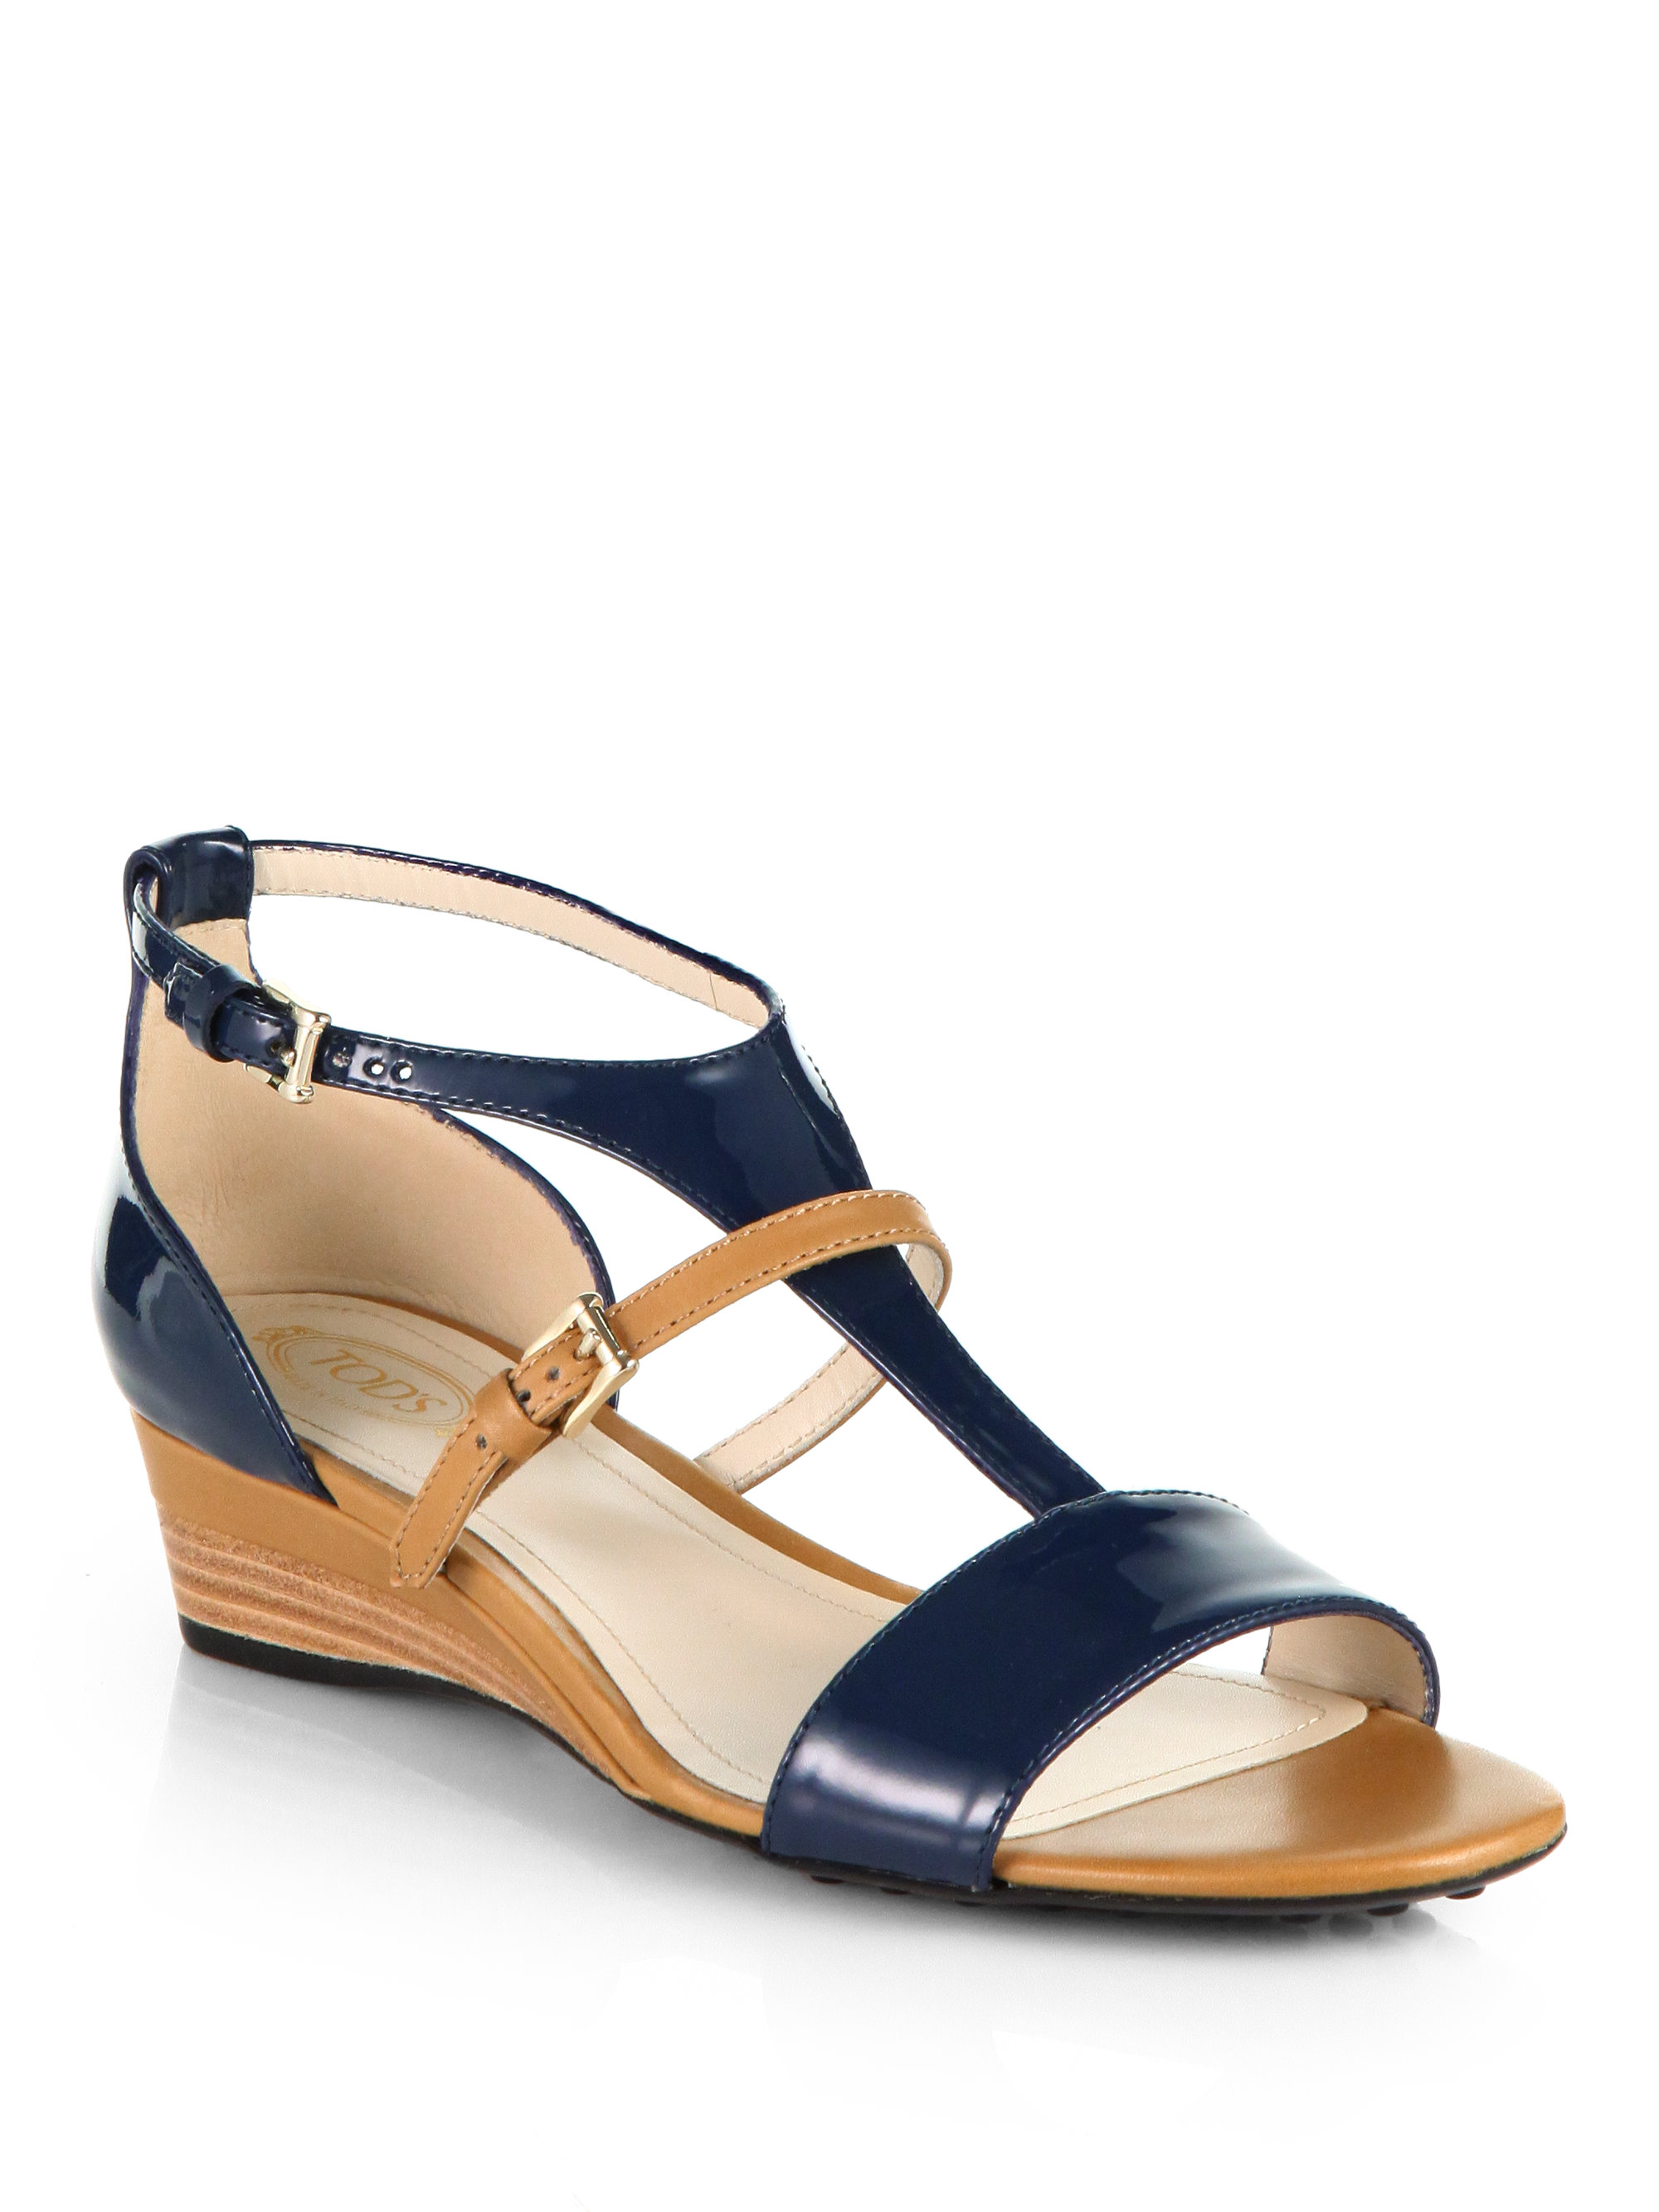 browse cheap price newest Tod's Patent Ankle-Strap Sandals buy cheap manchester great sale free shipping very cheap latest cheap online yS3pb